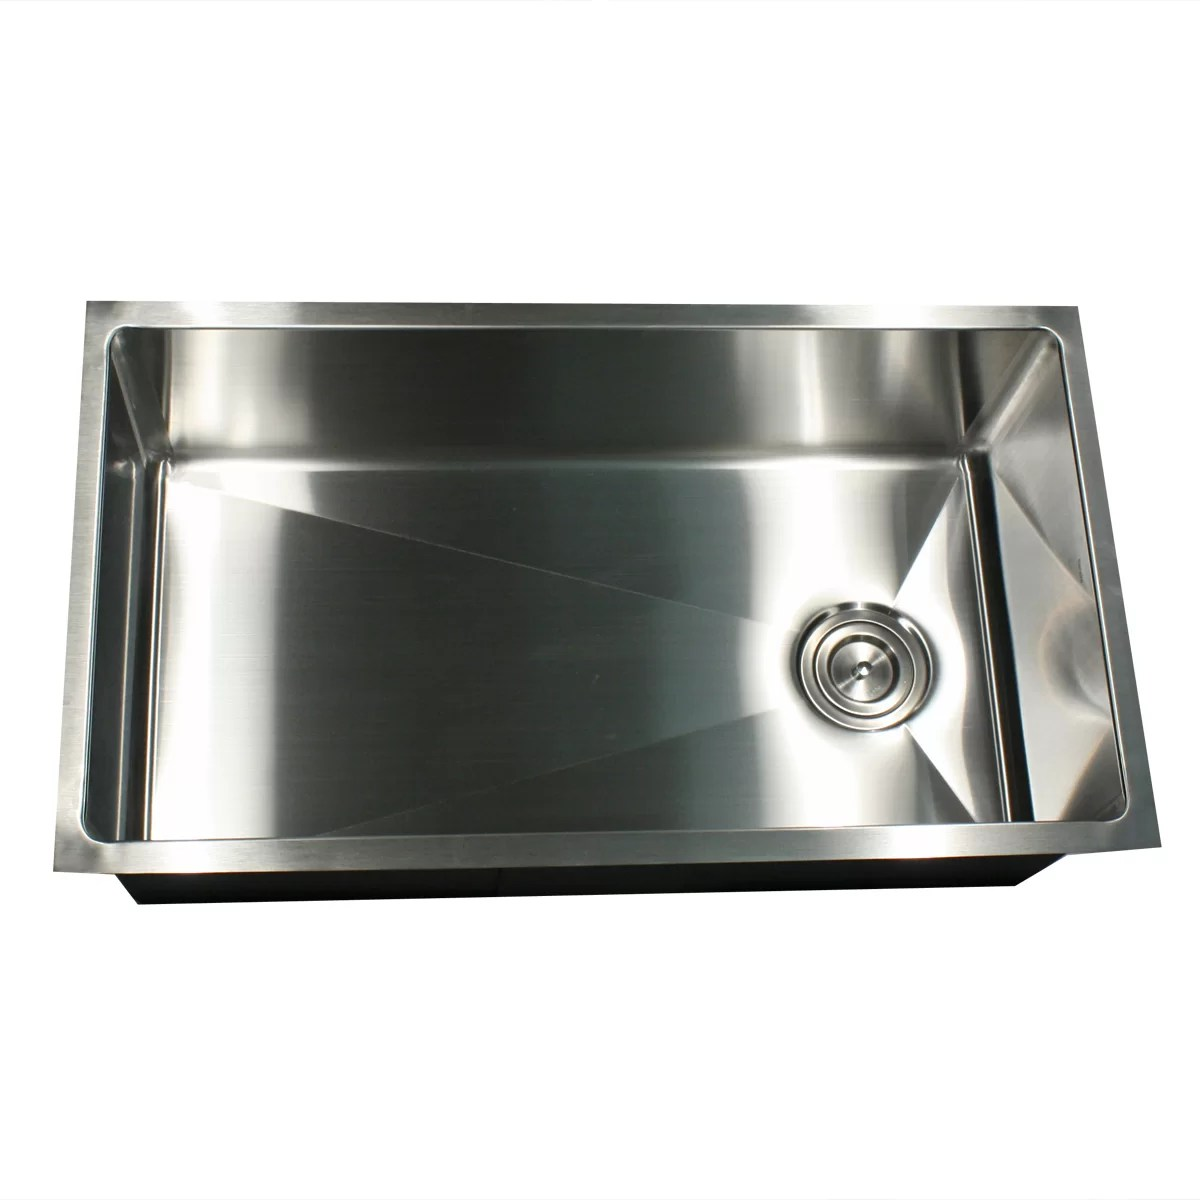 stainless steel kitchen sink reviews hood fire suppression system installation nantucket sinks 32 quot x 18 small radius